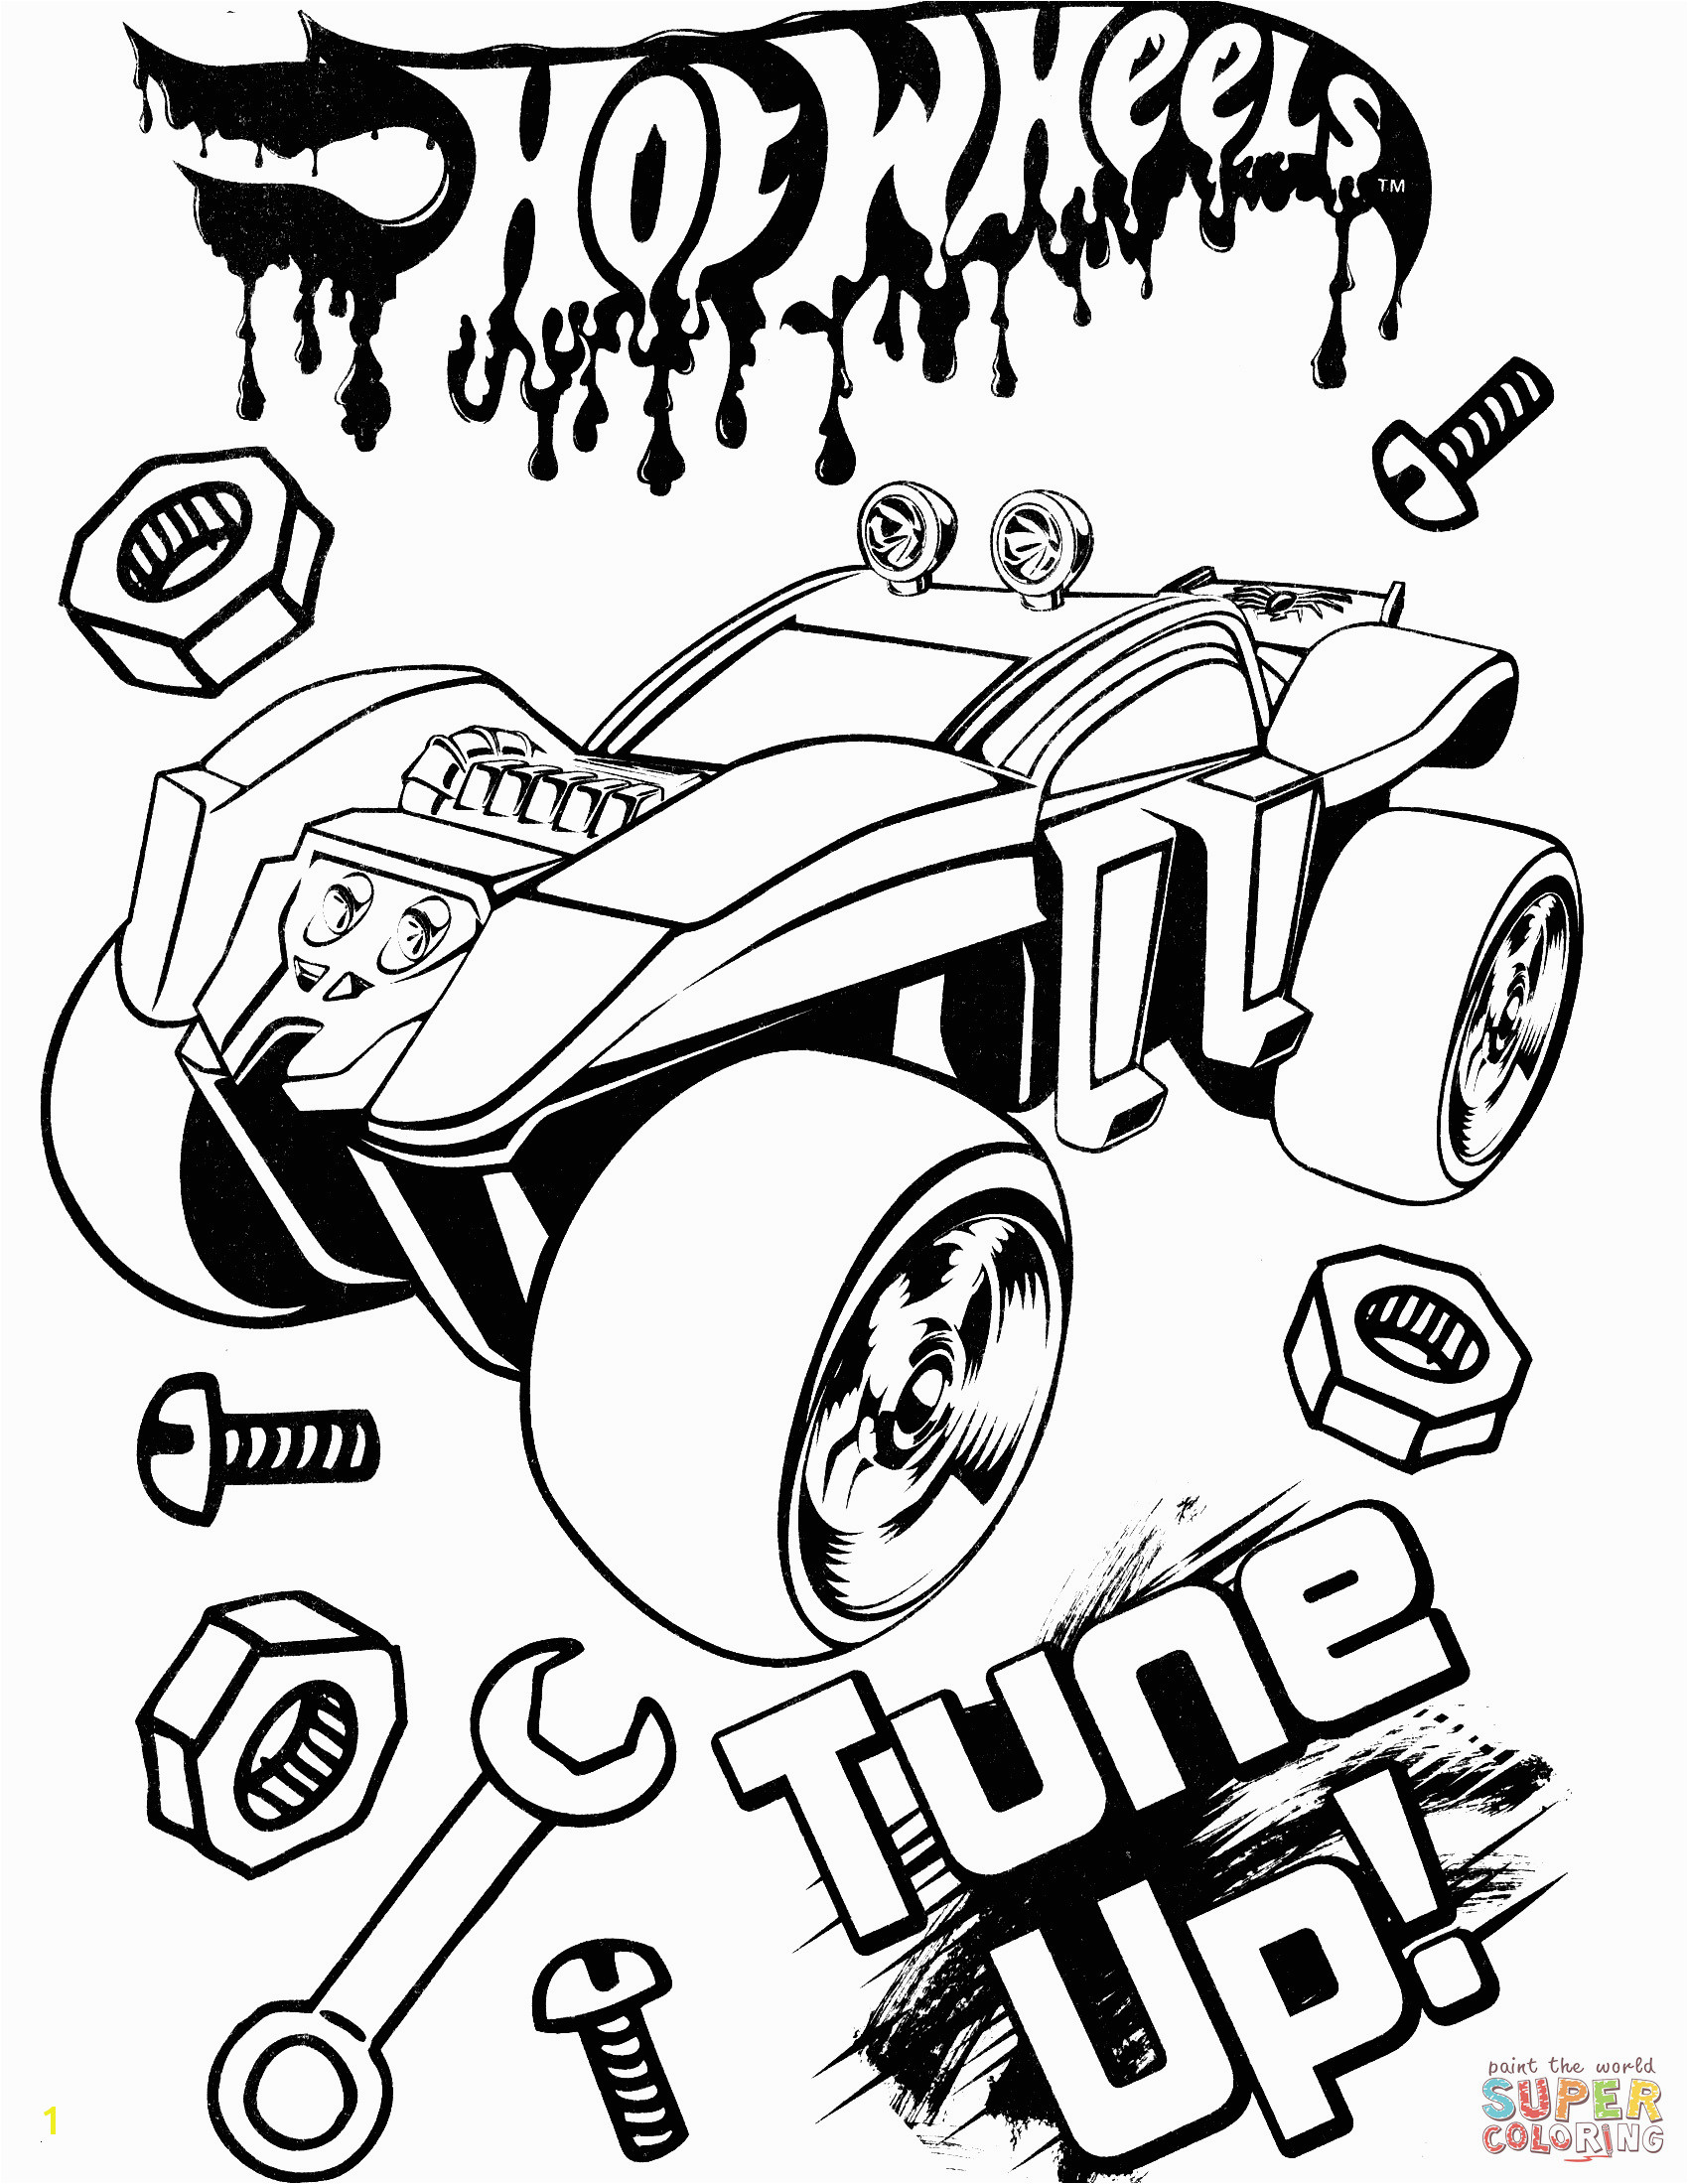 Hot Wheels Cars Coloring Pages Hot Wheels Coloring Pages Unique Hot Wheels Car Drawing at